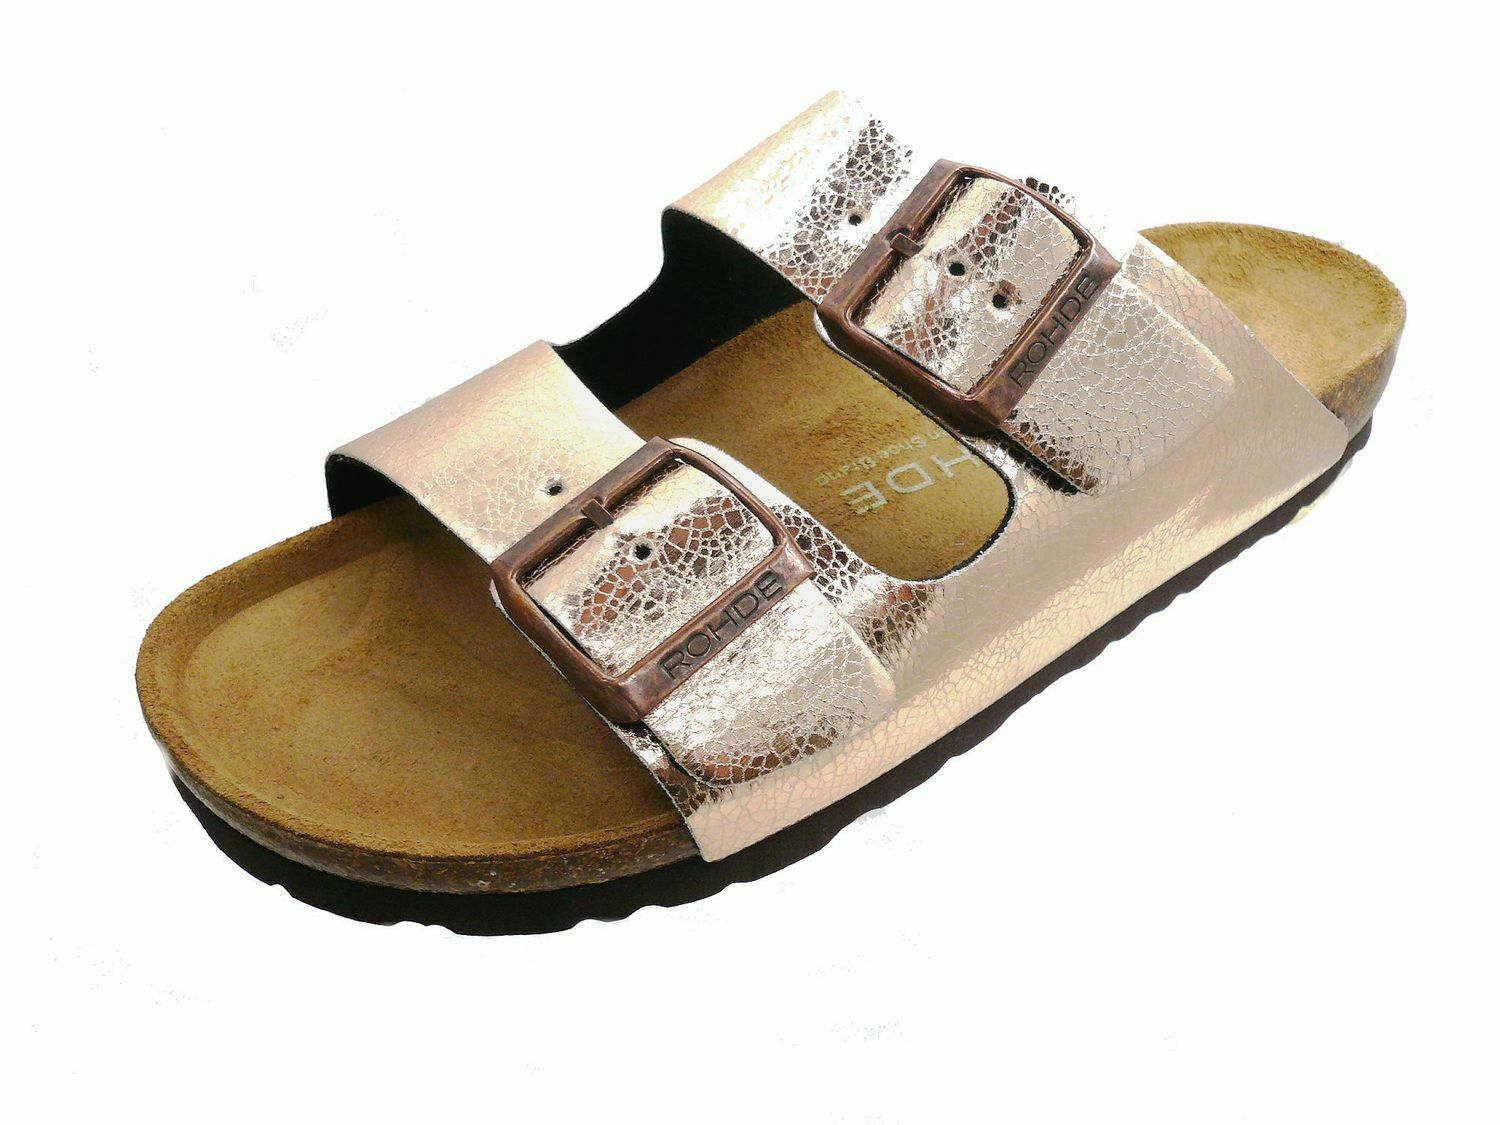 Rohde Alba 5616 running shoes be at home women mules copper sandal